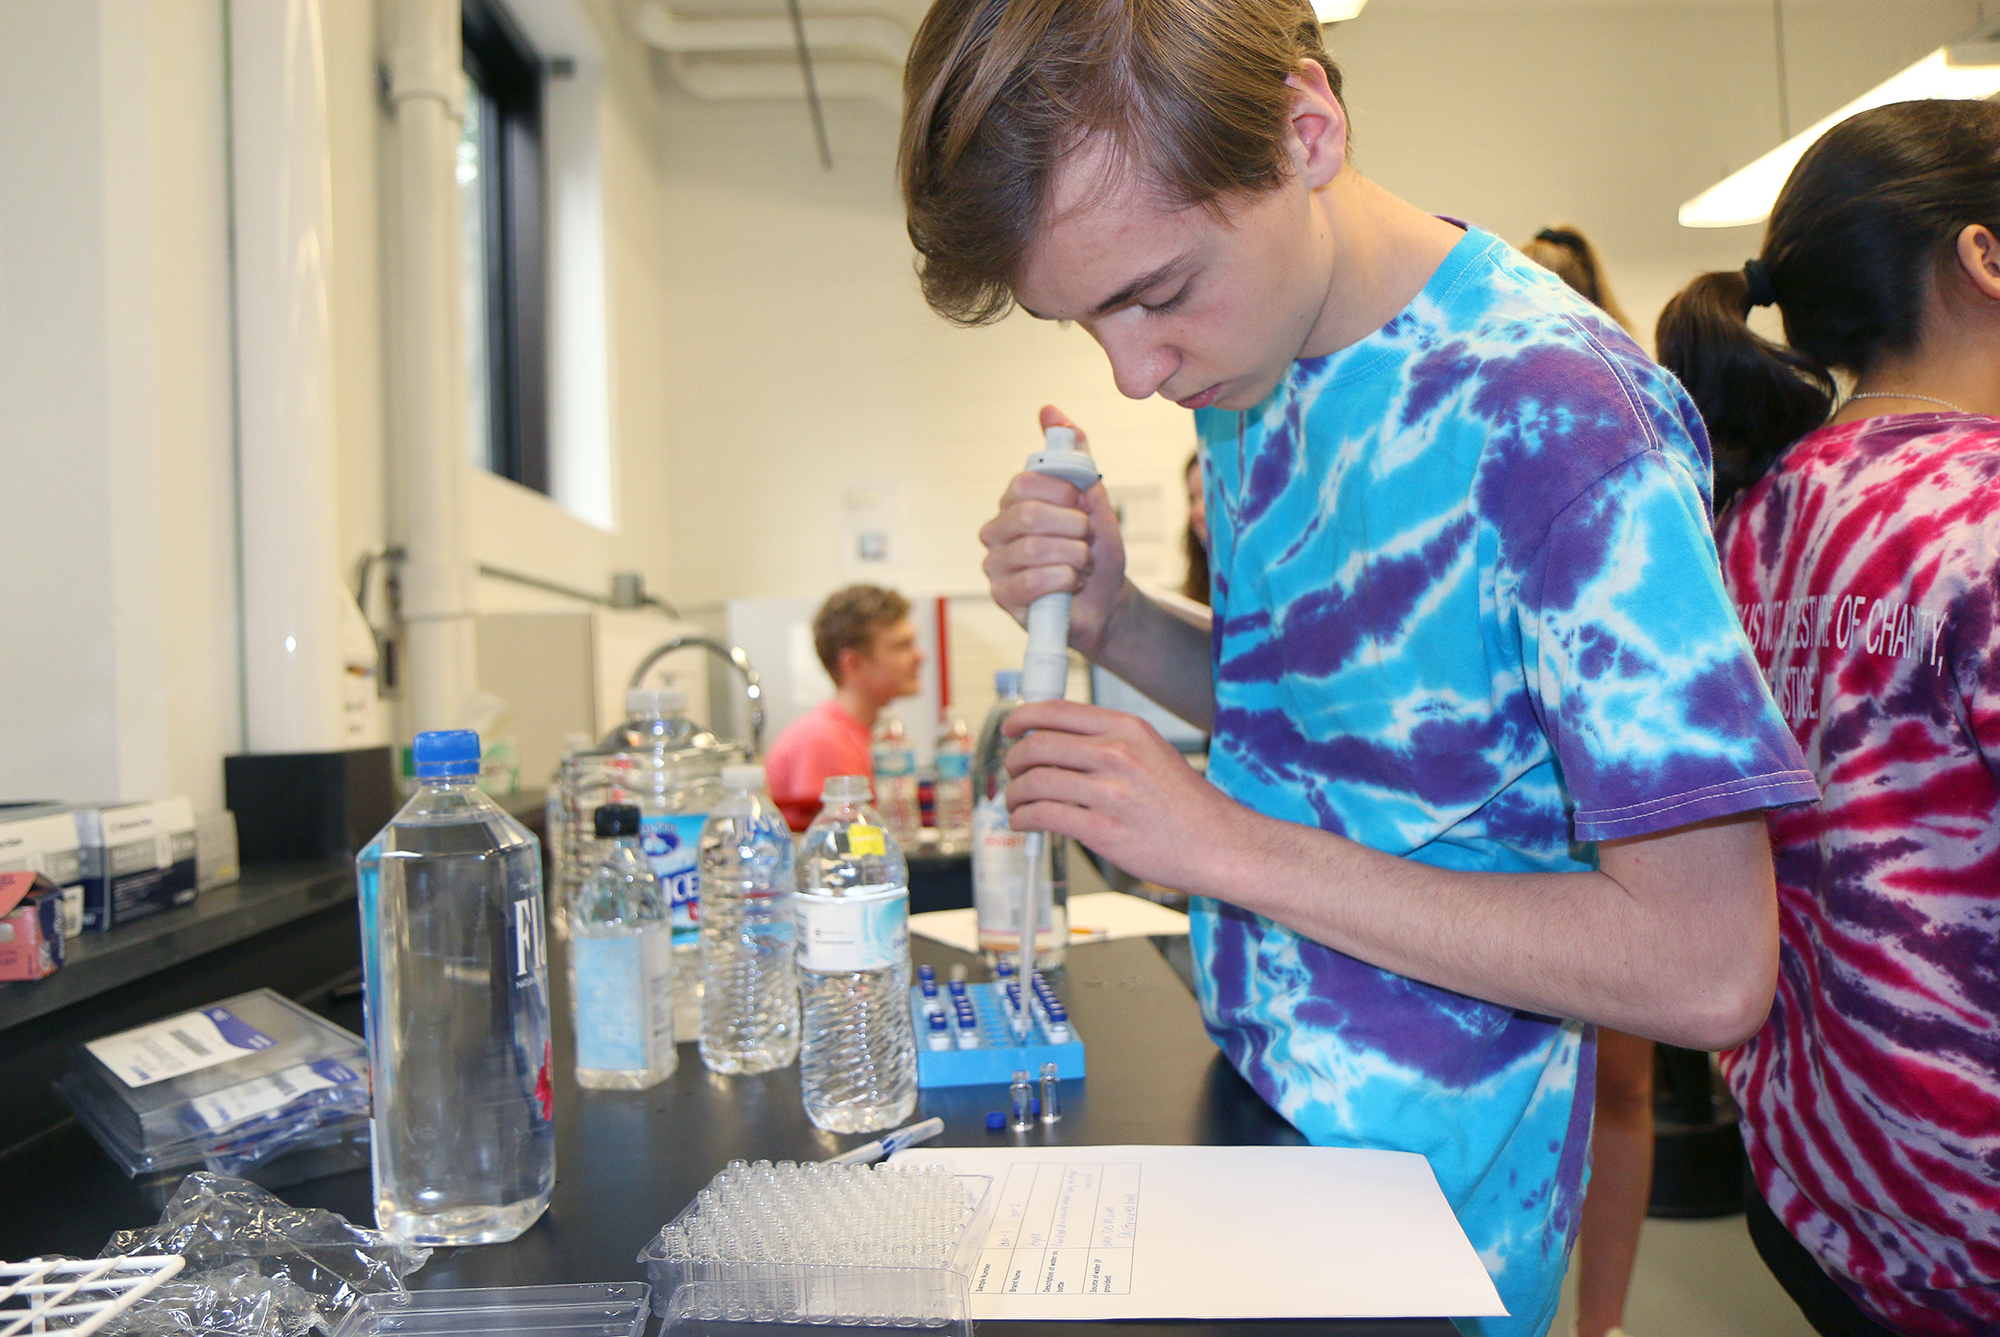 Brennan stands at a table with a large pipette and a water bottle.